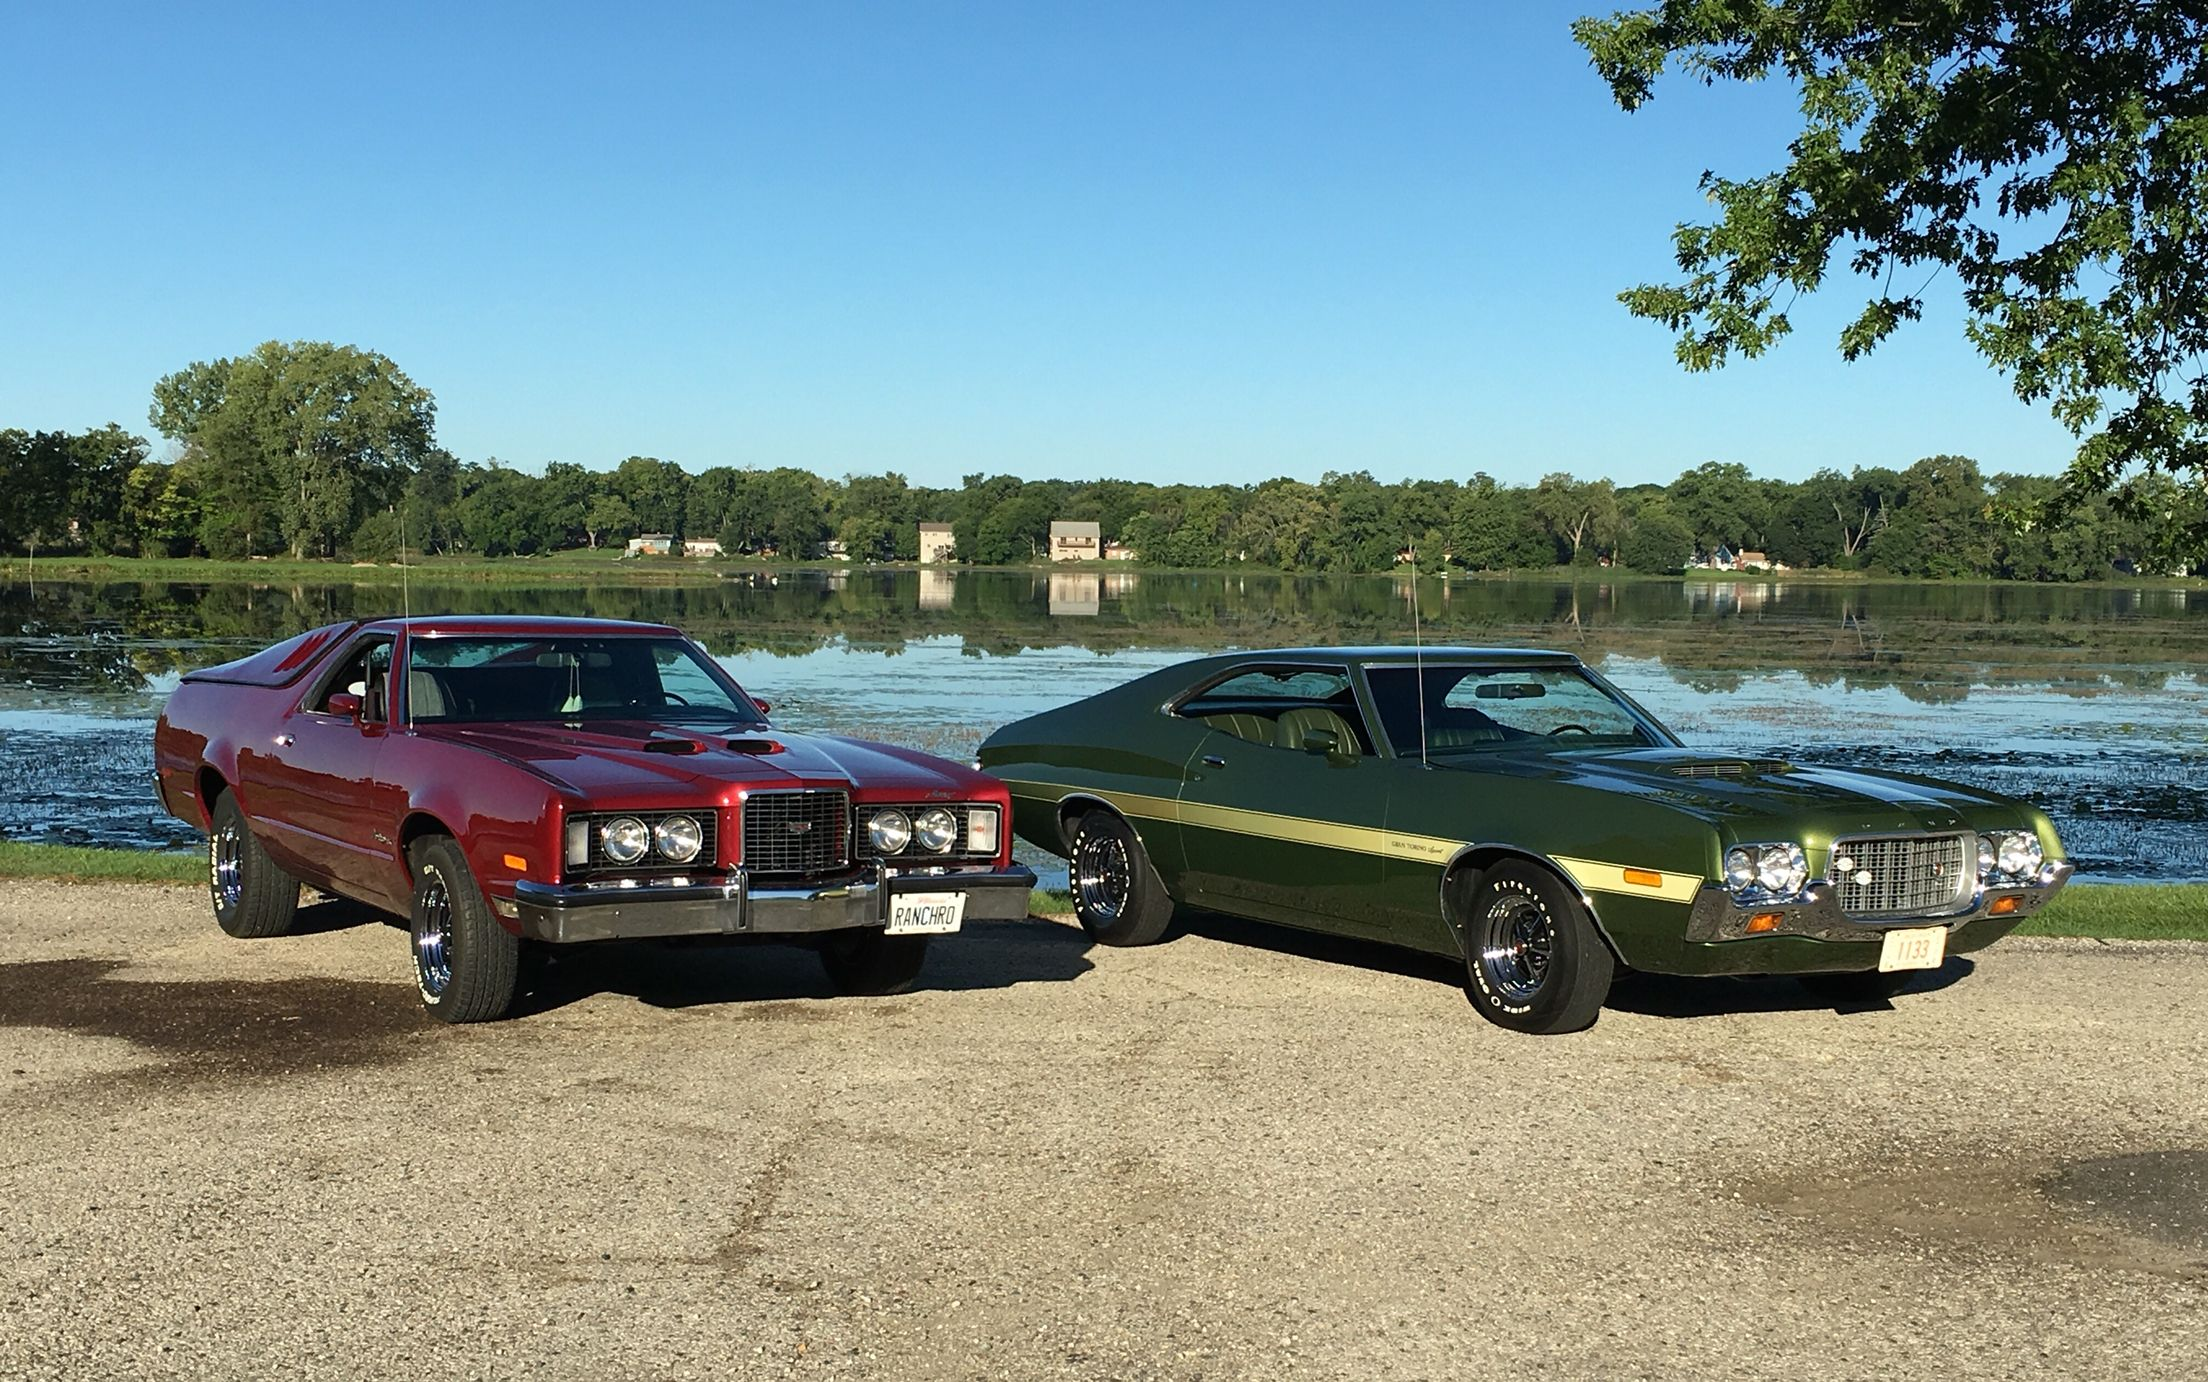 Classic 70 S Fords At Yesterday S Lakemoor Charity Car Show 1972 Ford Gran Torino Sport 1979 Ford Ranchero Con